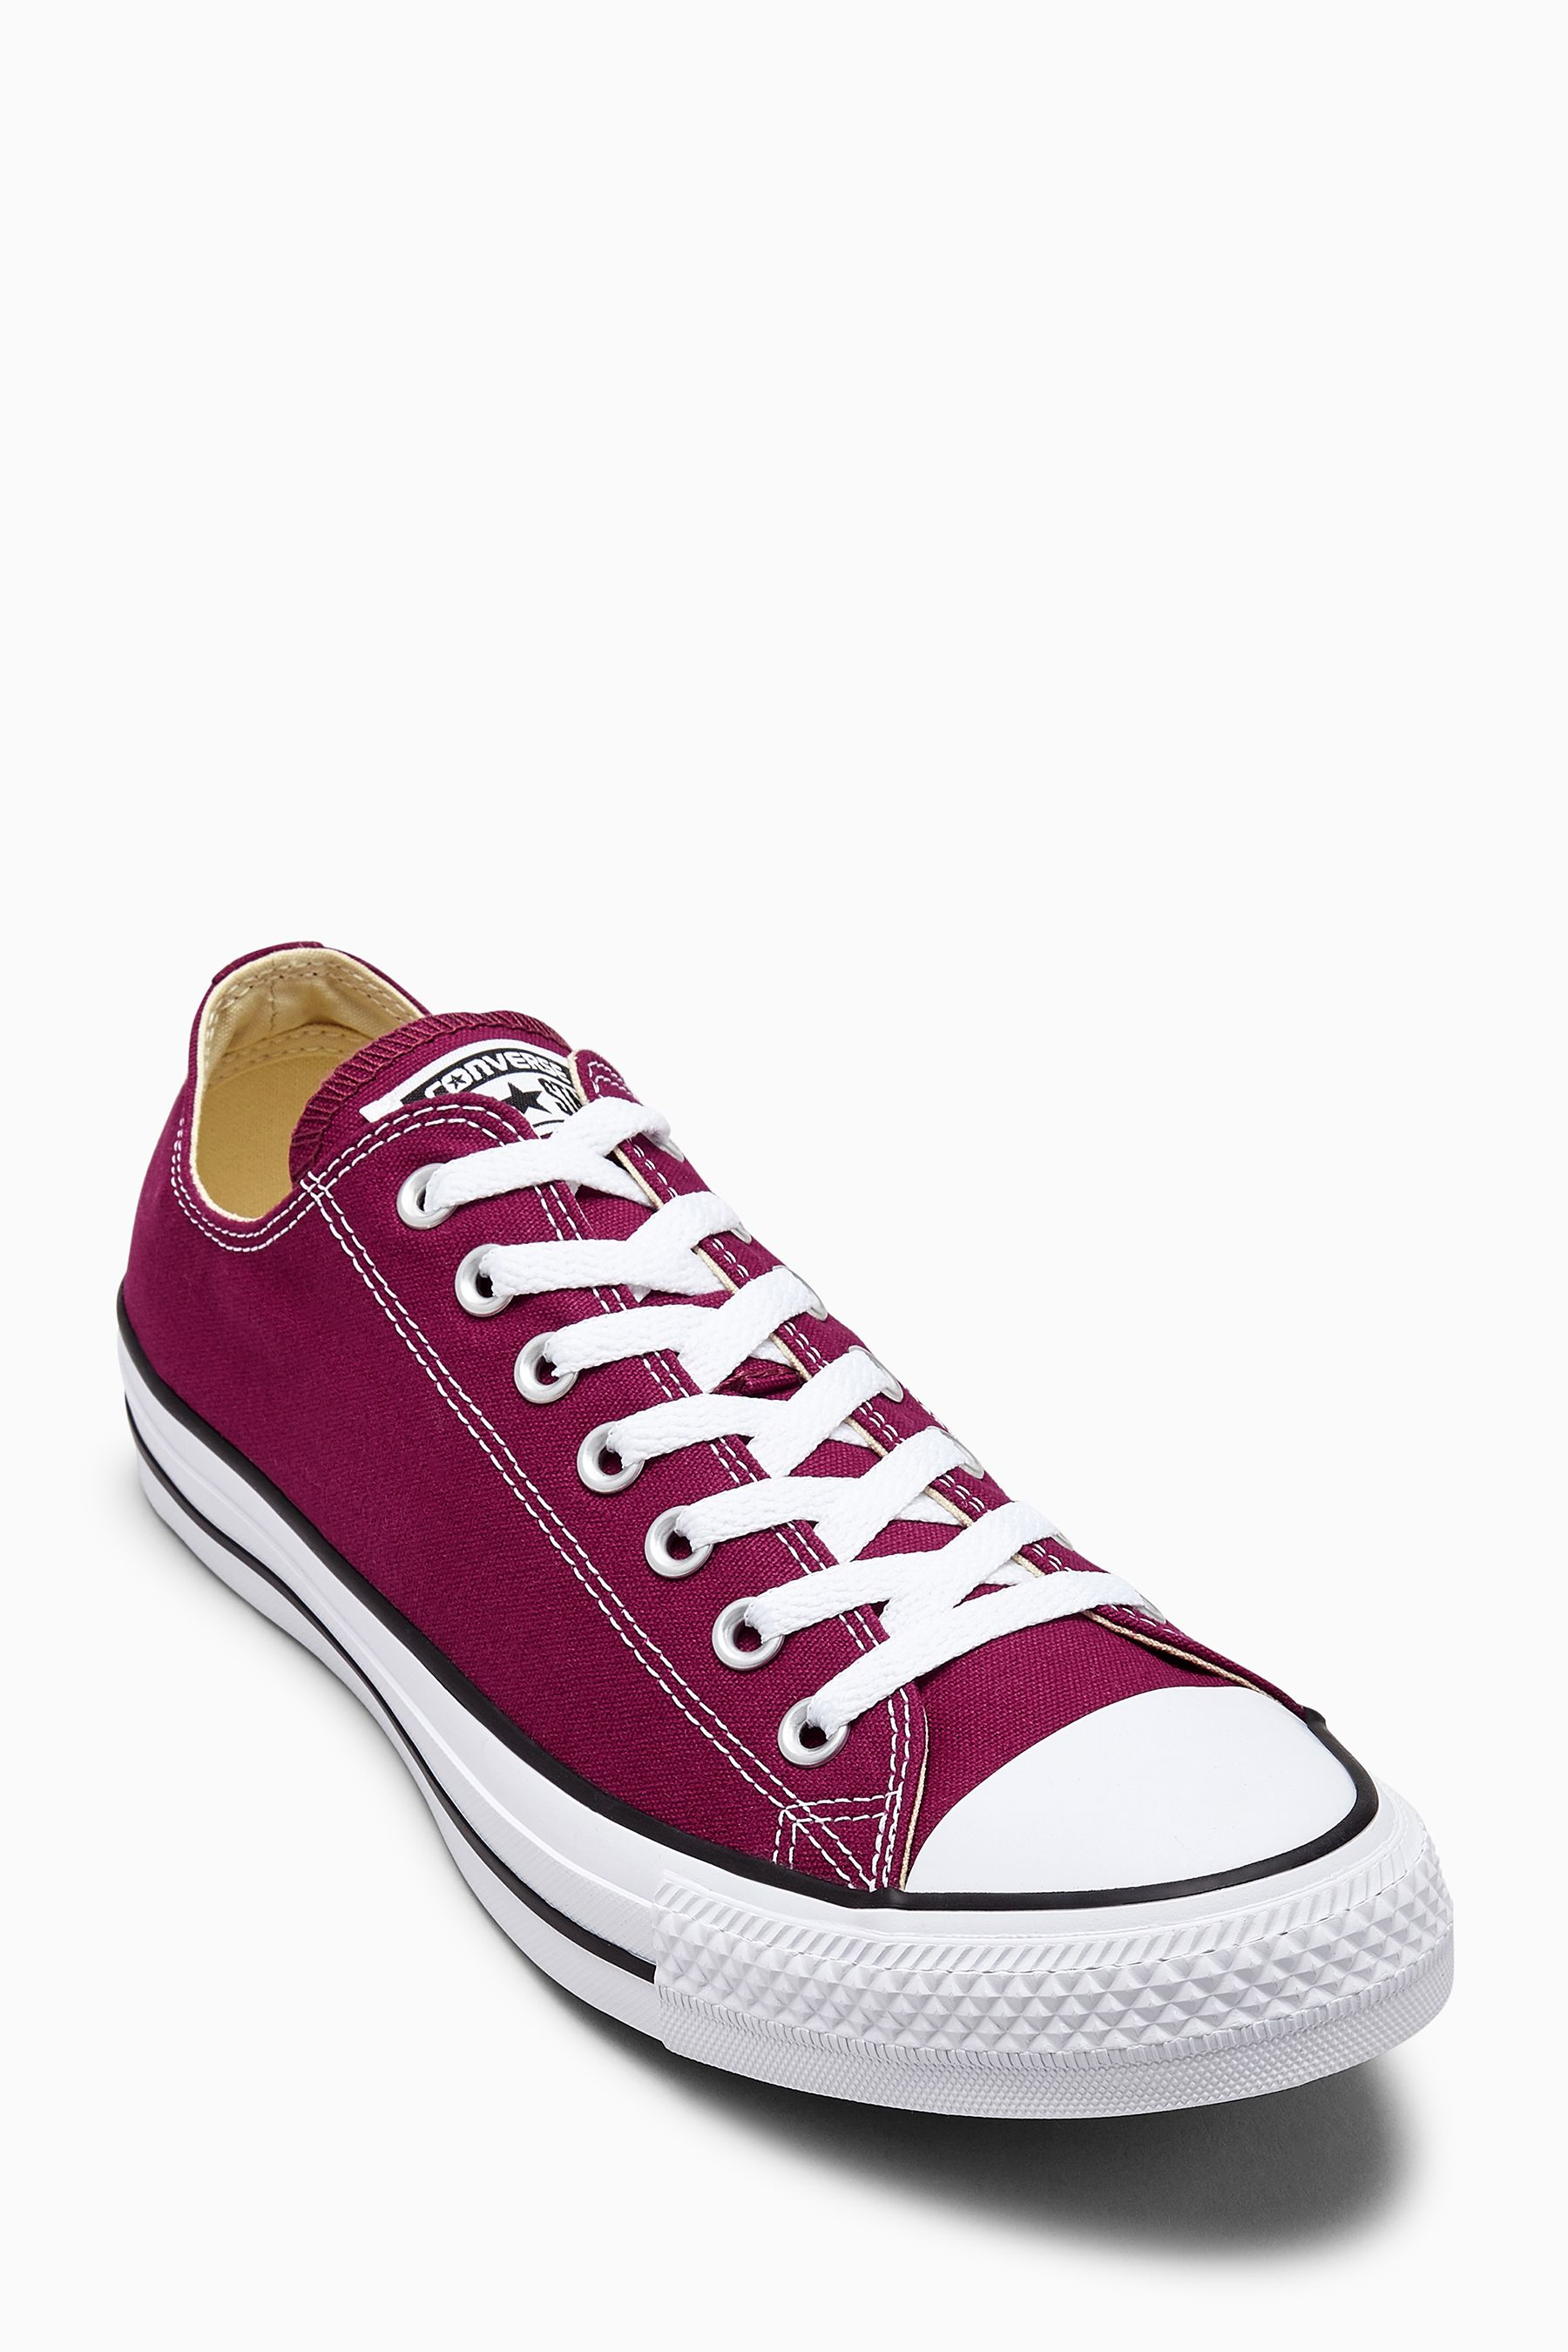 Converse Chuck Taylor Ox Trainers | Products in 2019